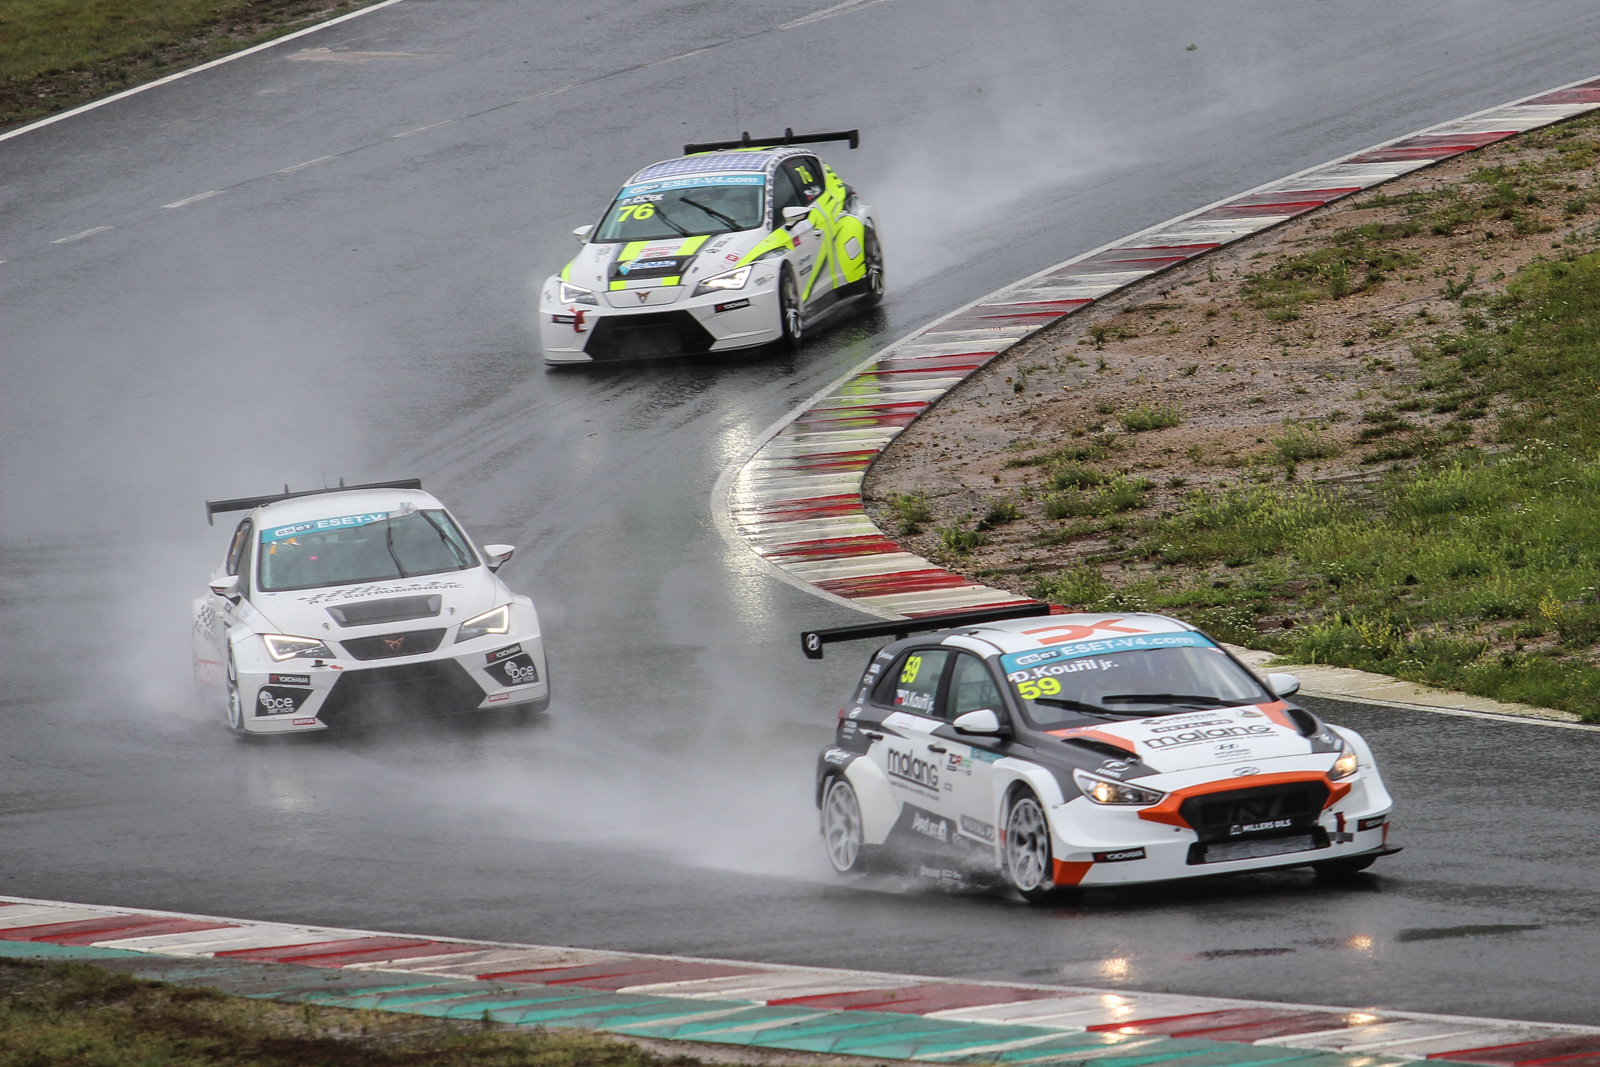 TCR category is set for a big finale as drivers prepare for the penultimate event